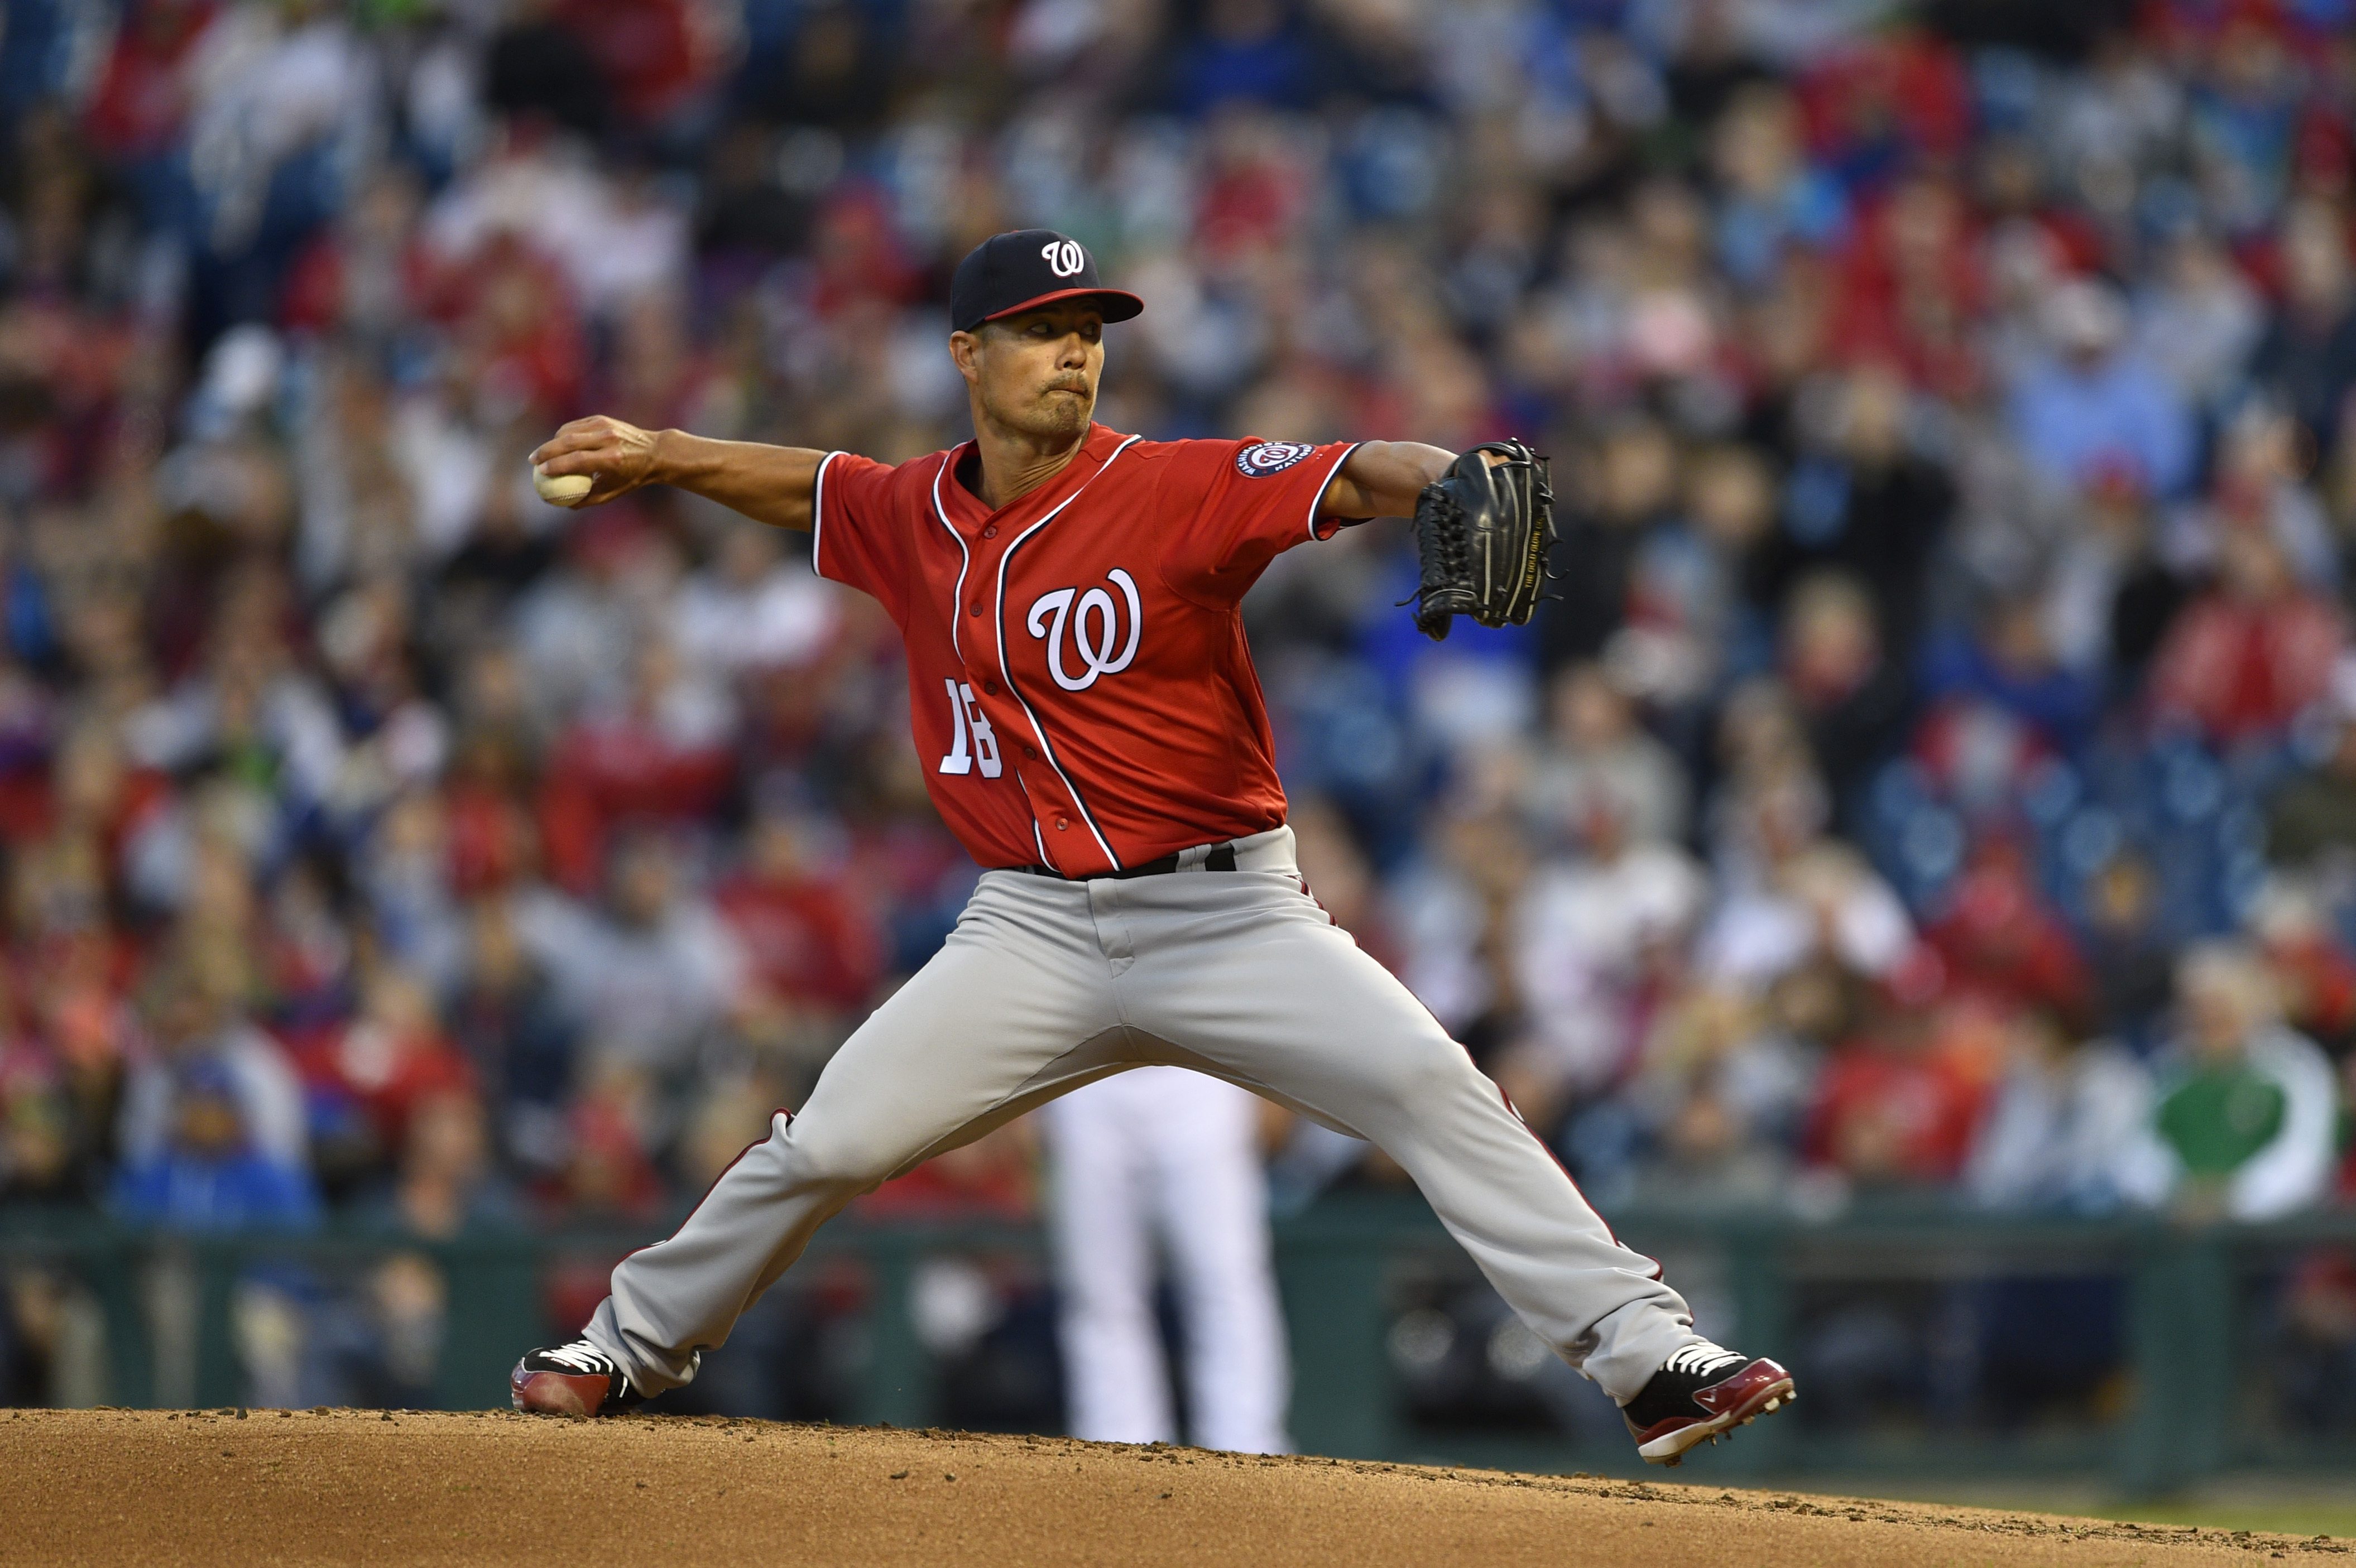 Washington Nationals starting pitcher Jeremy Guthrie in action during a baseball game against the Philadelphia Phillies, Saturday, April 8, 2017, in Philadelphia.